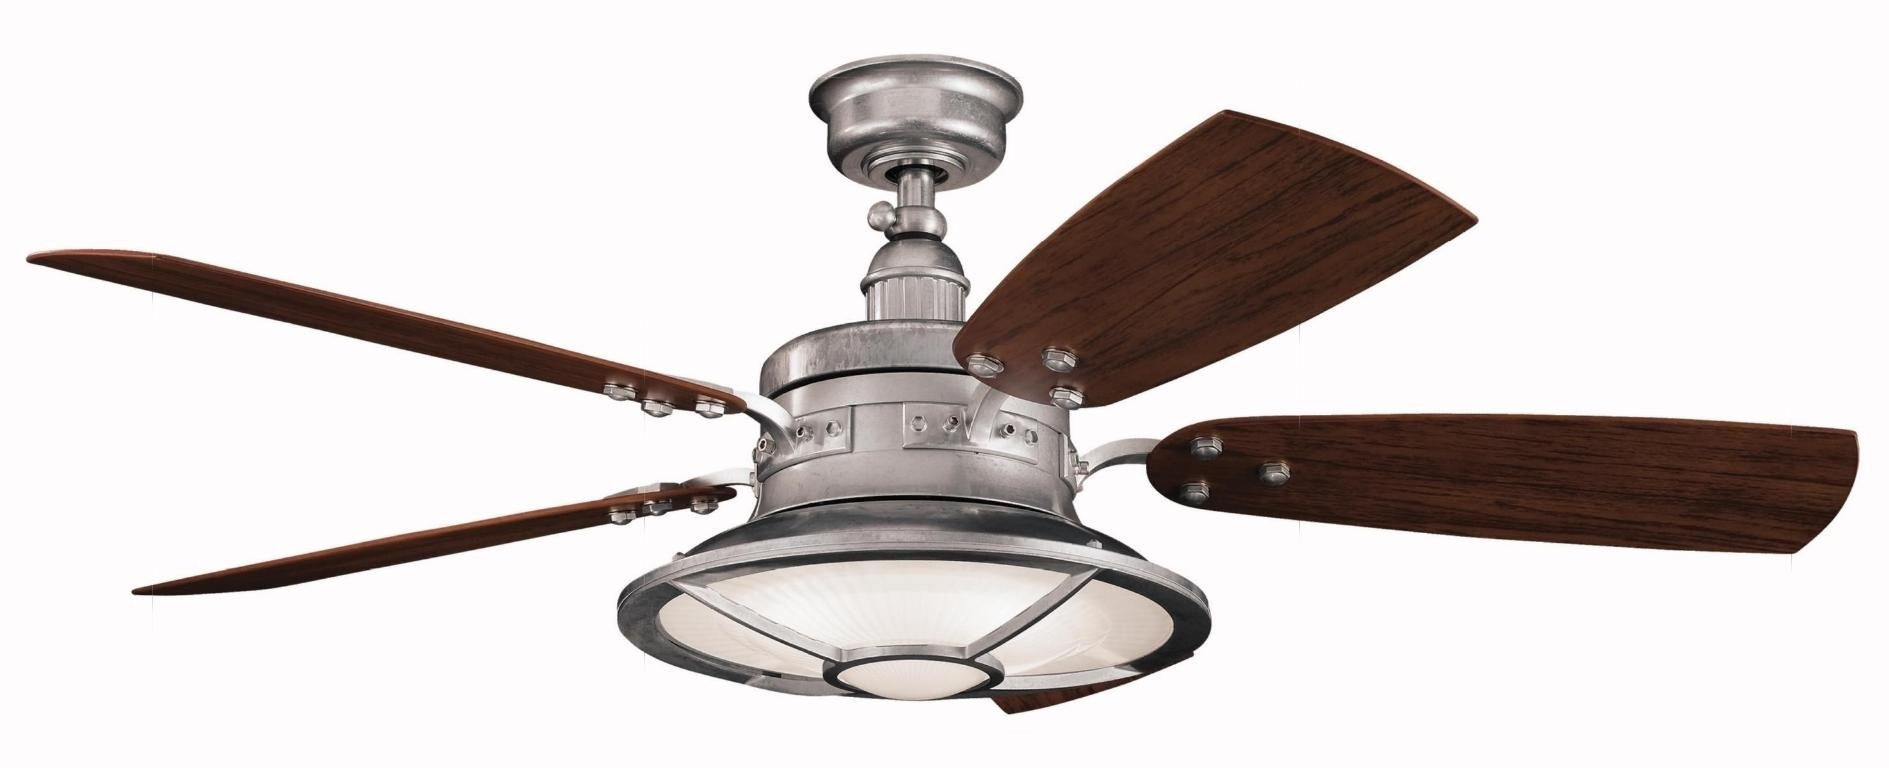 Ceiling Fans : Hunter Outdoor Ceiling Fans With Lights Wet Rated Inside Outdoor Ceiling Fans With Damp Rated Lights (#2 of 15)